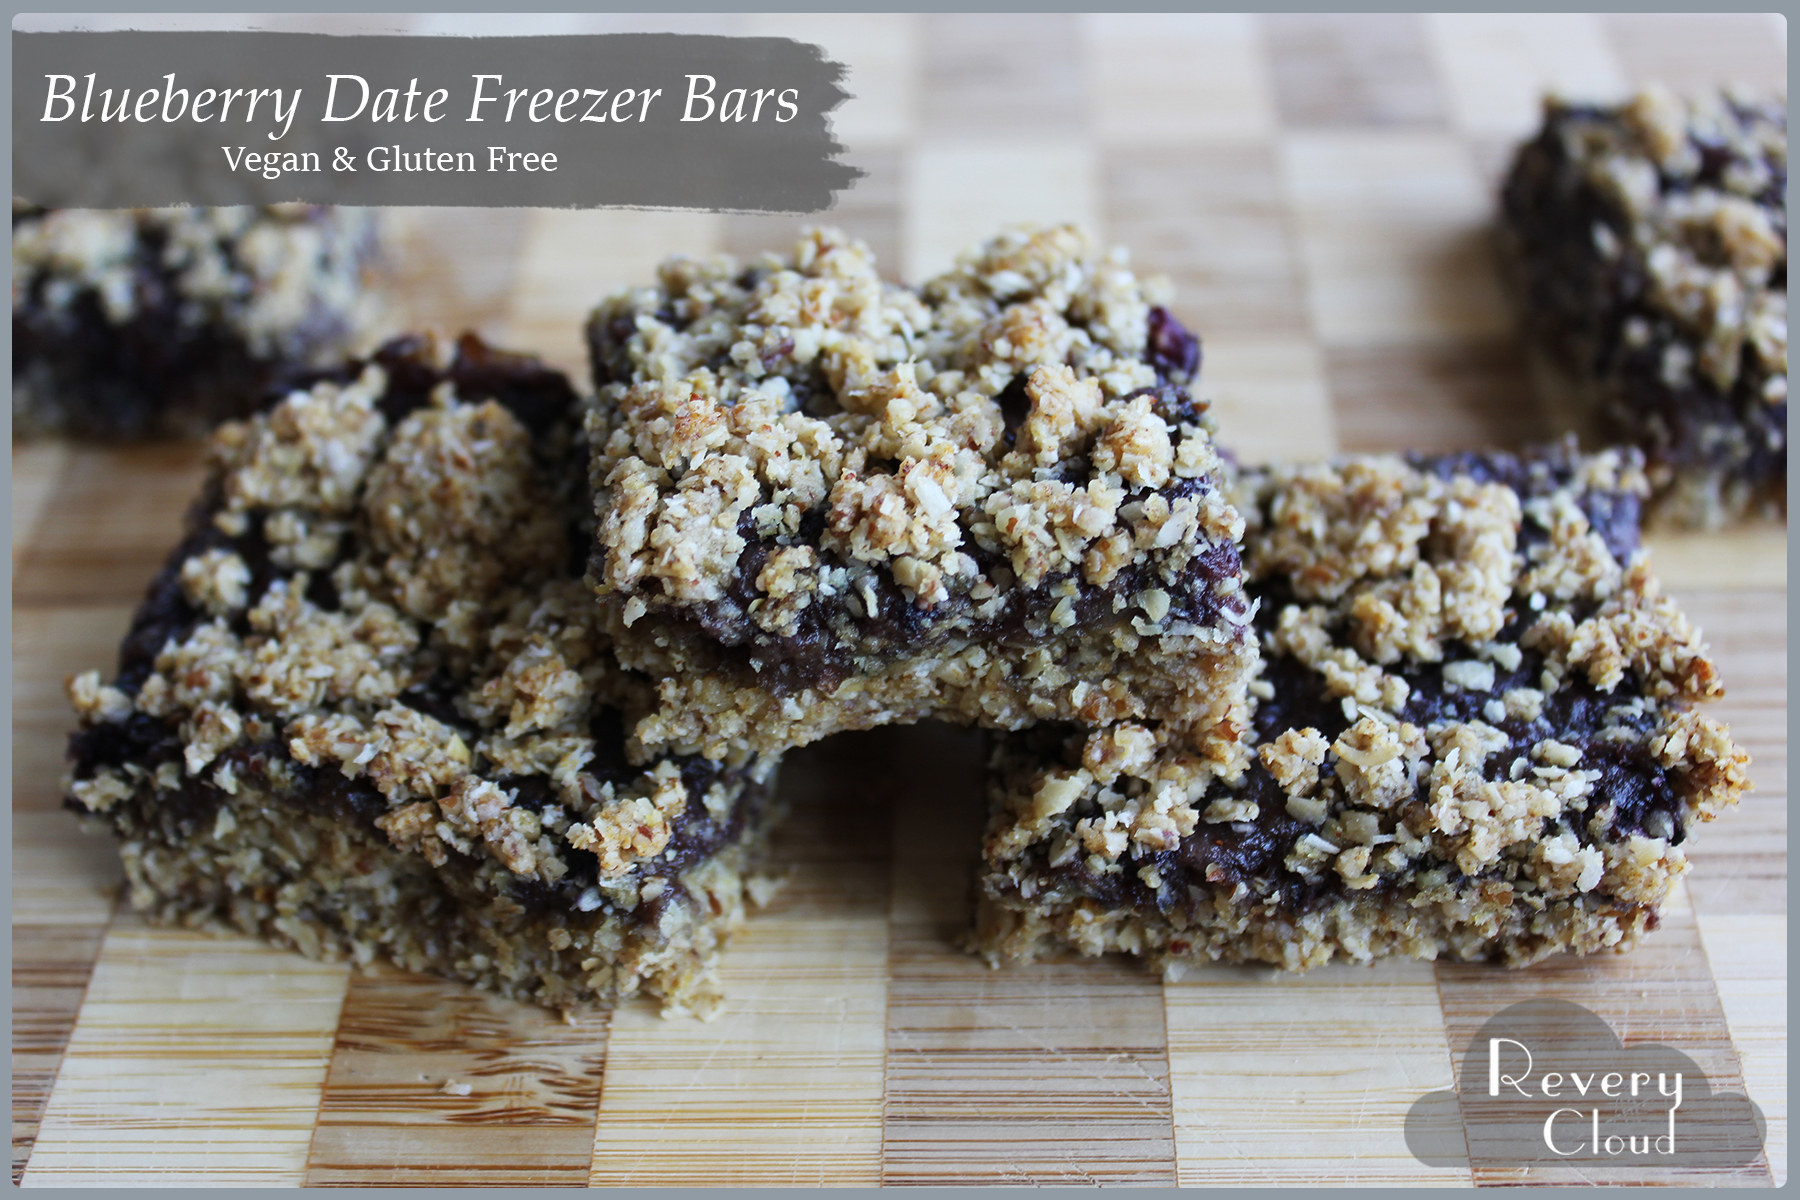 Blueberry Date Freezer Bars (Vegan & Gluten Free) || www.reverycloud.com